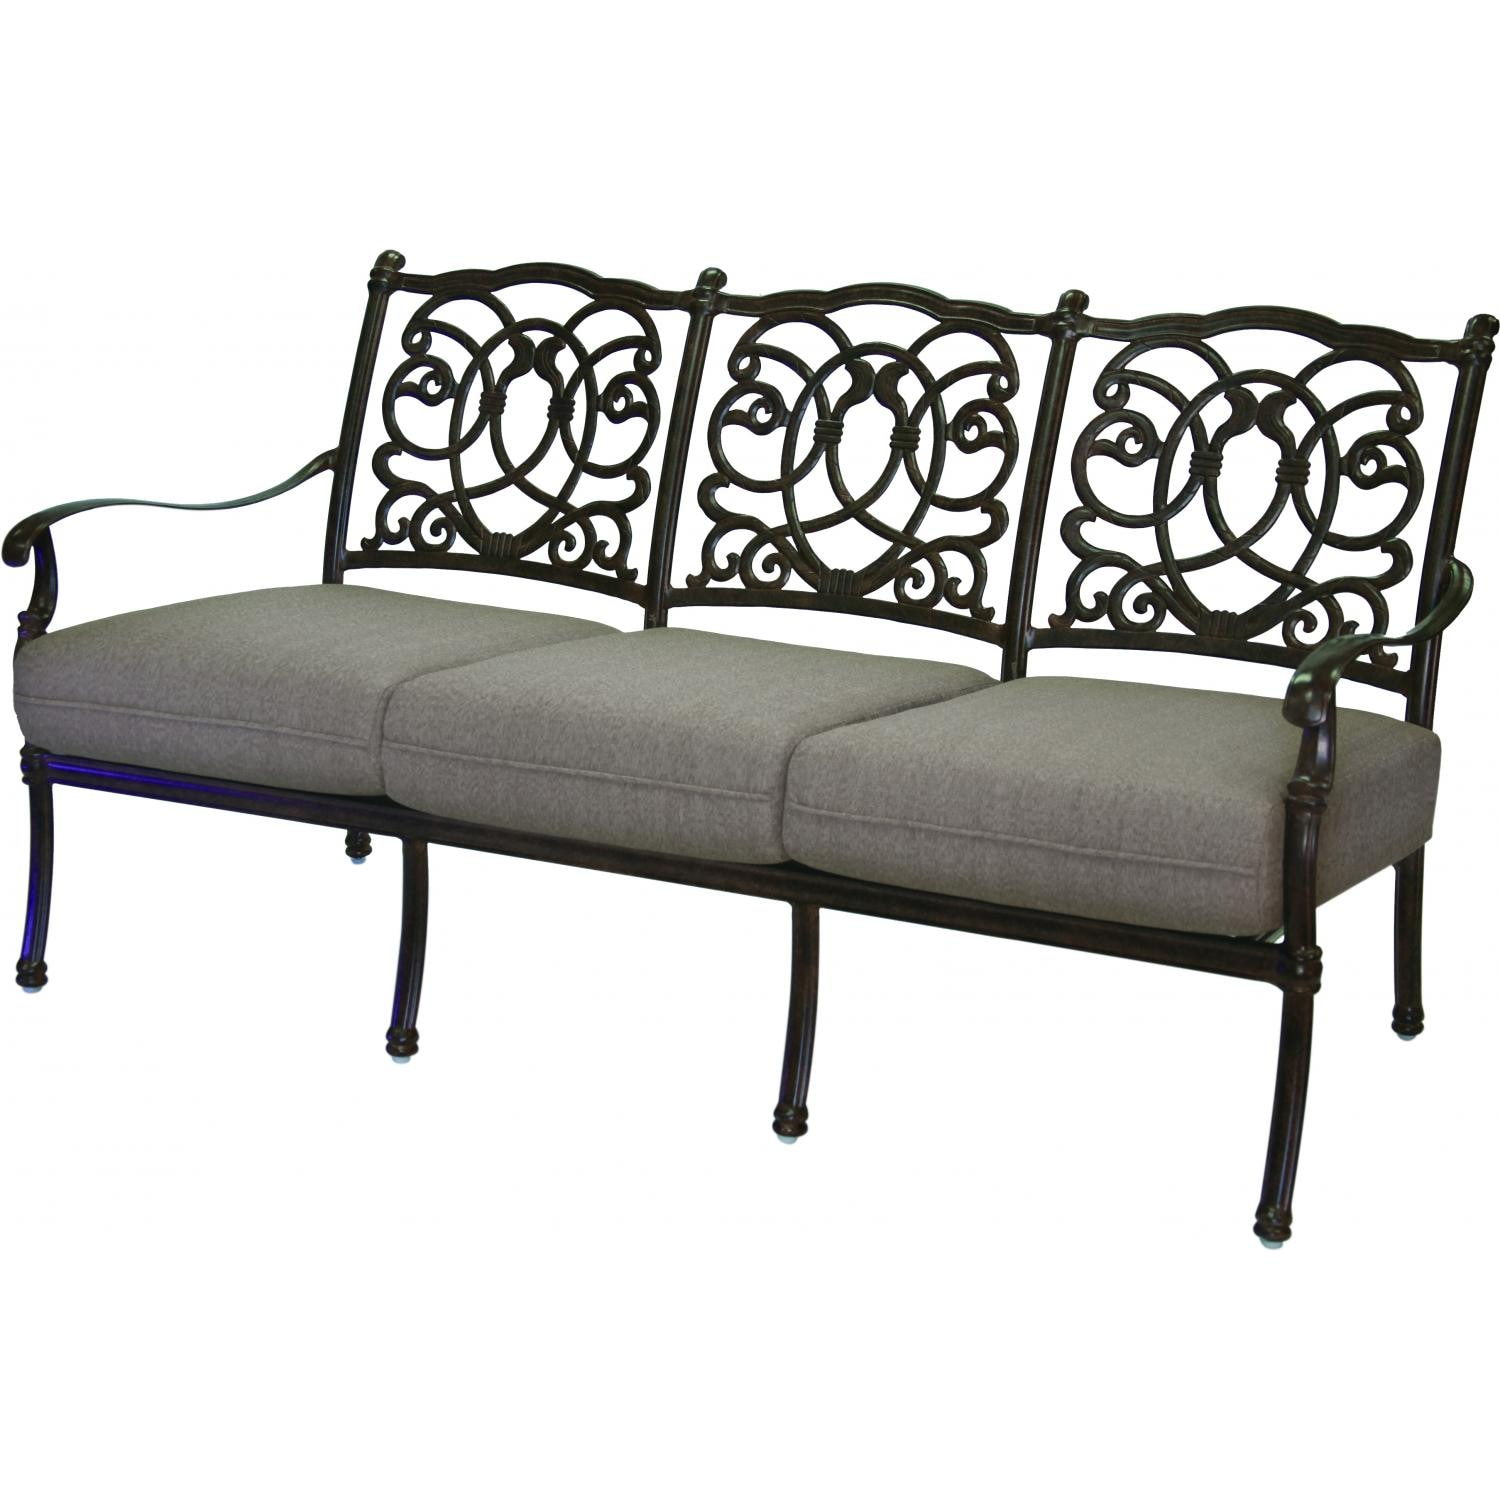 Darlee Florence 4 Piece Cast Aluminum Patio Conversation Seating Set Mocha